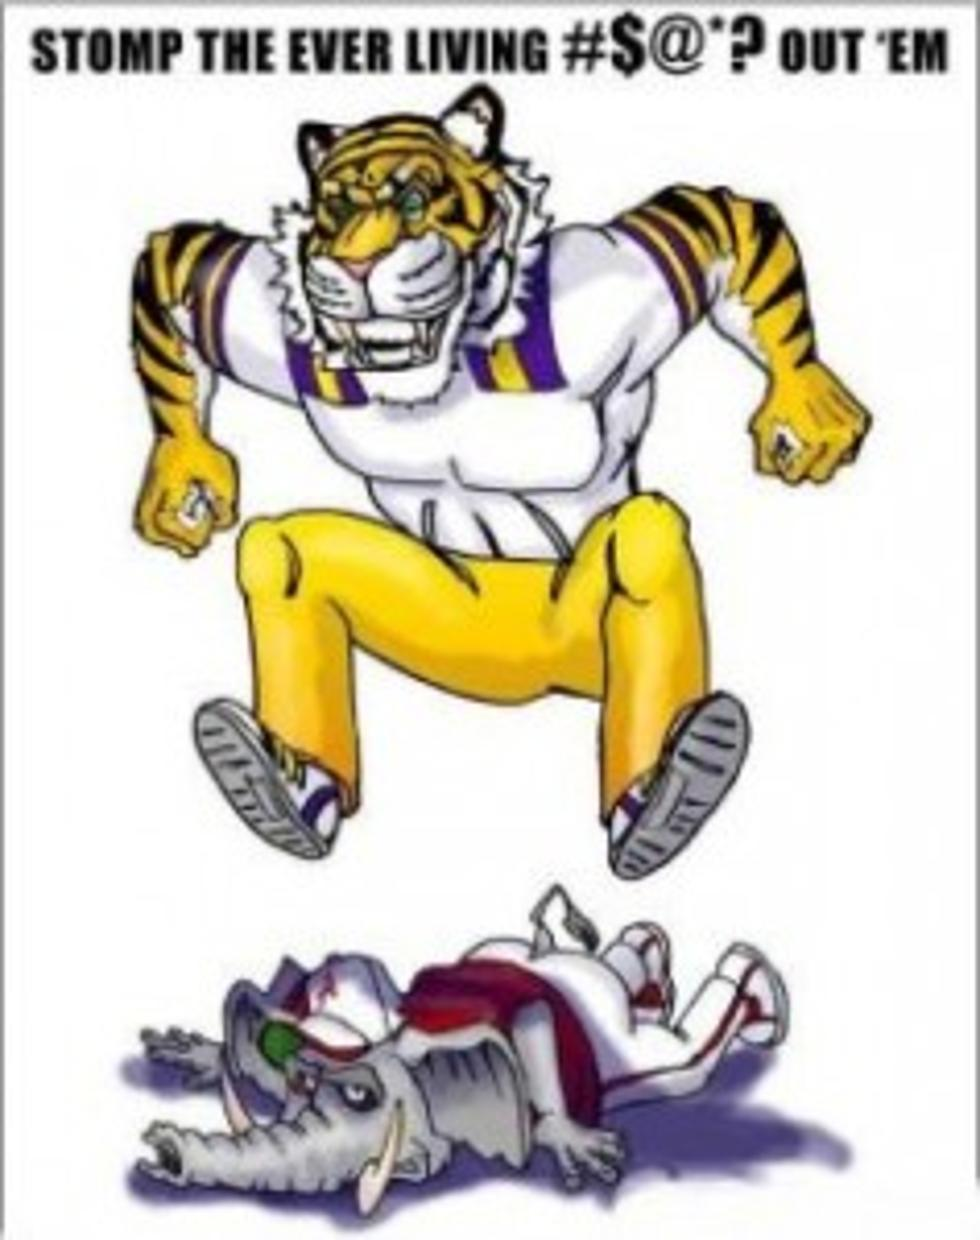 Lsu vs alabama clipart 8 » Clipart Portal.